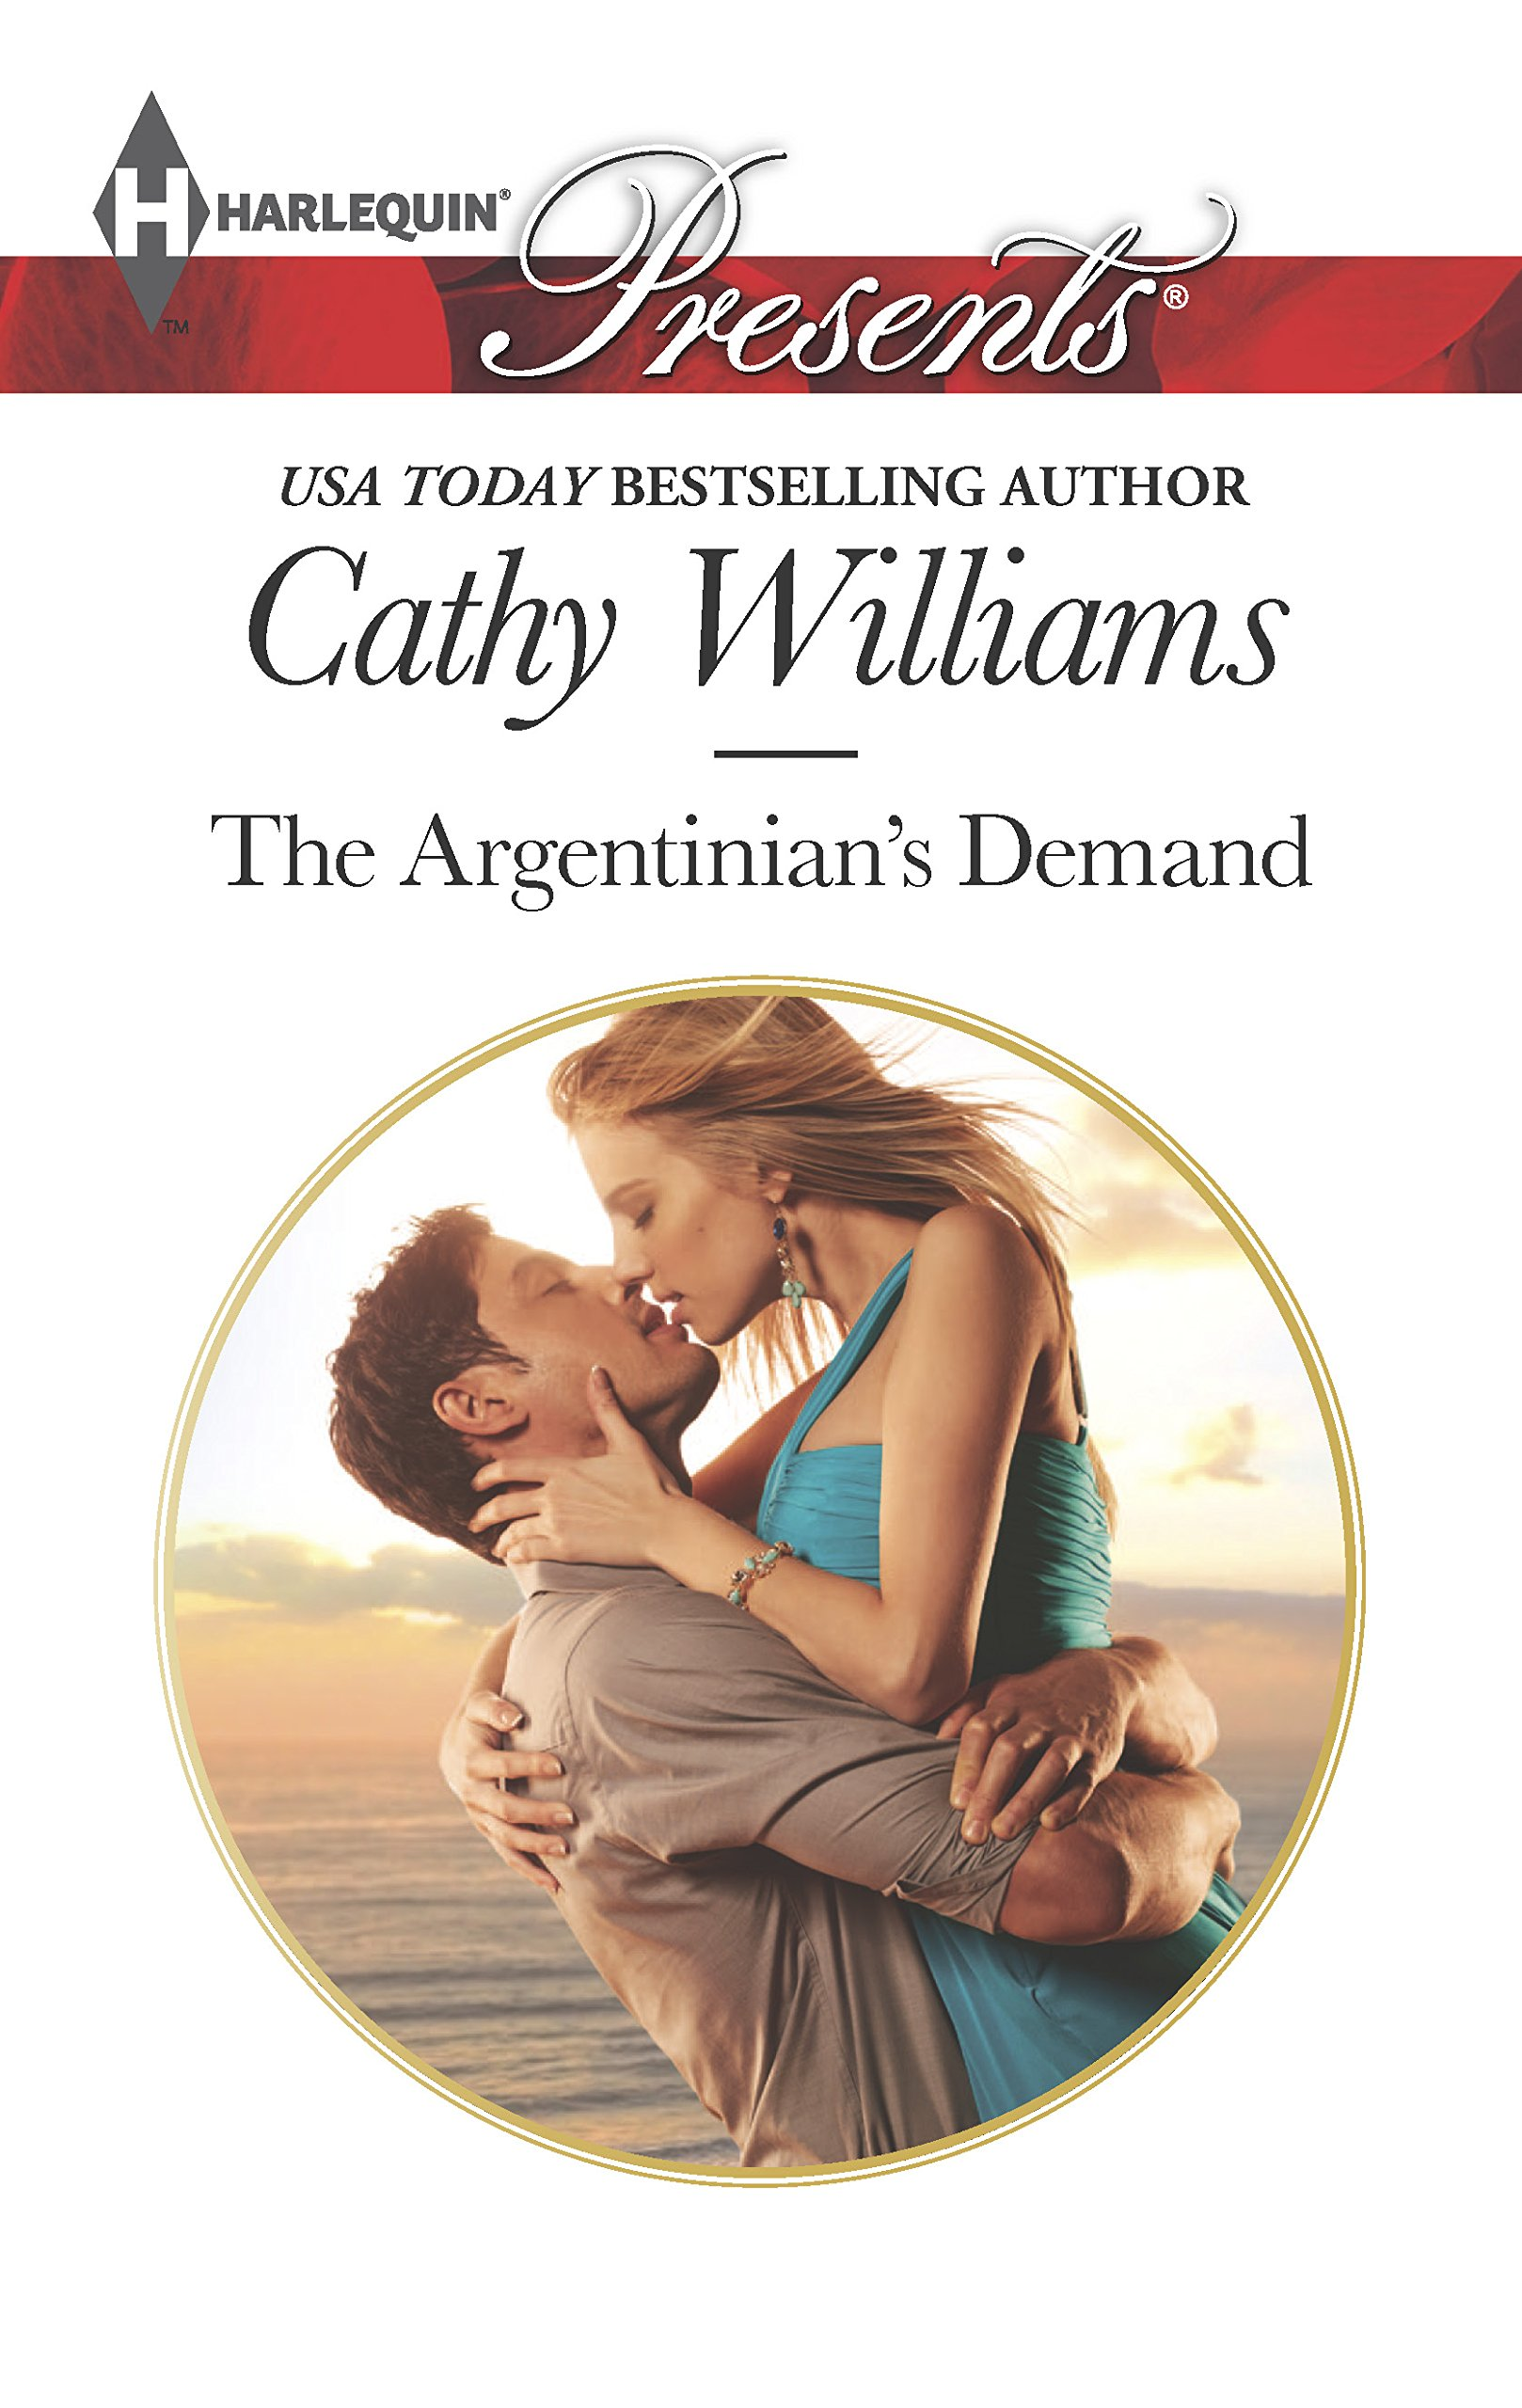 Download The Argentinian's Demand (Harlequin Presents) PDF